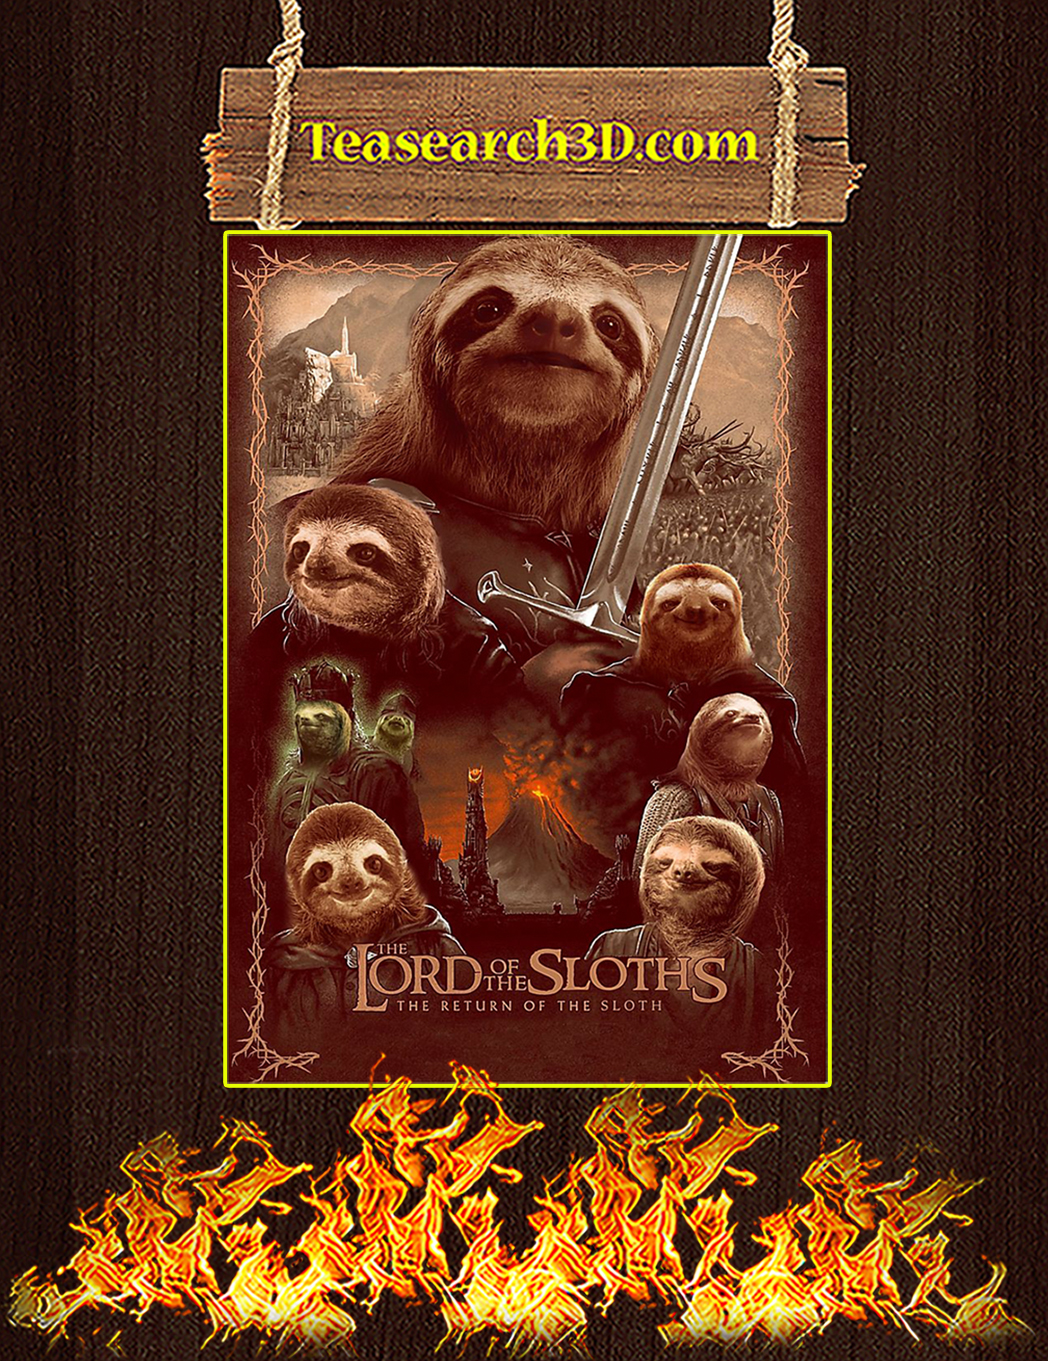 Lord of the sloths parody poster A1